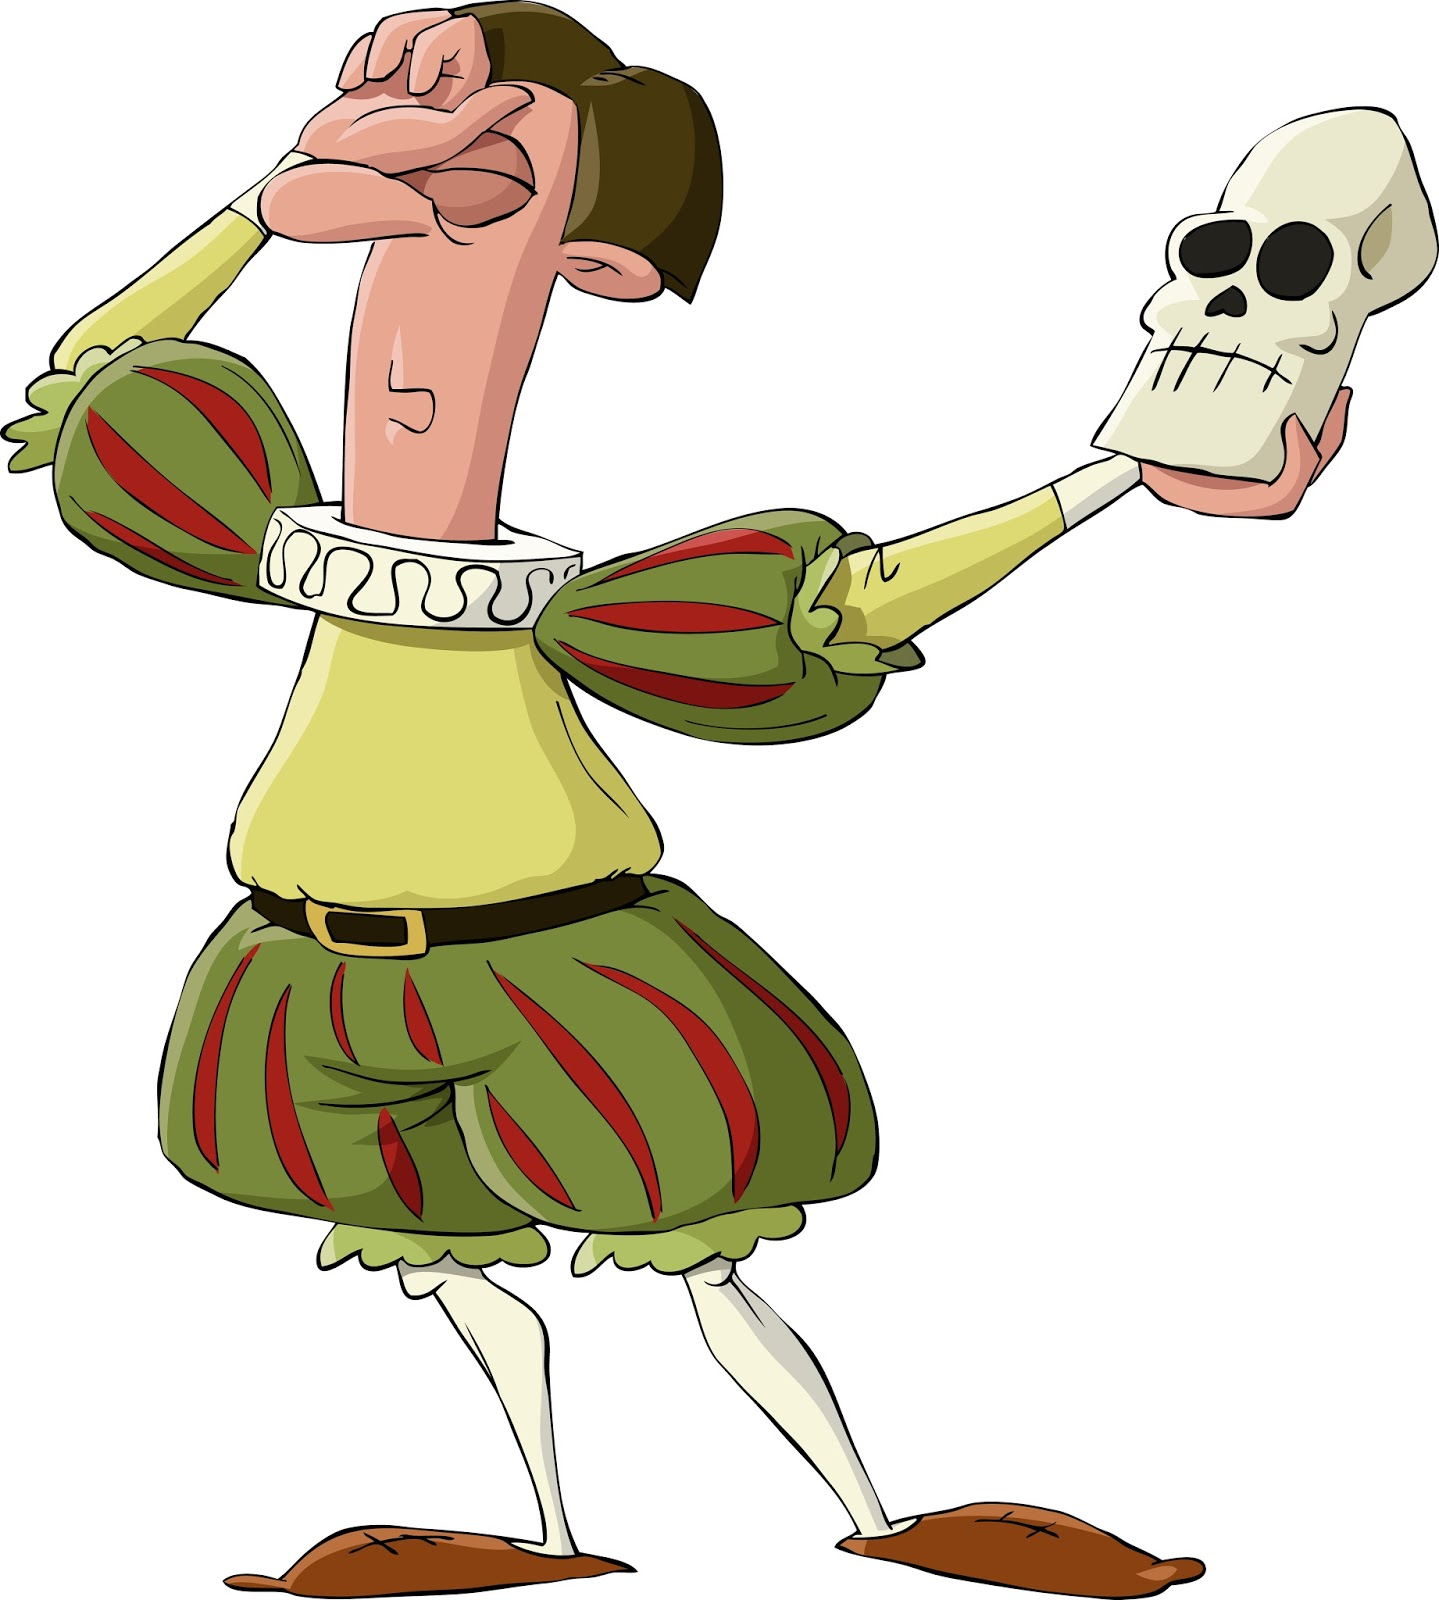 I have to write an essay on hamlet being a trickster, how do i start my introduction?